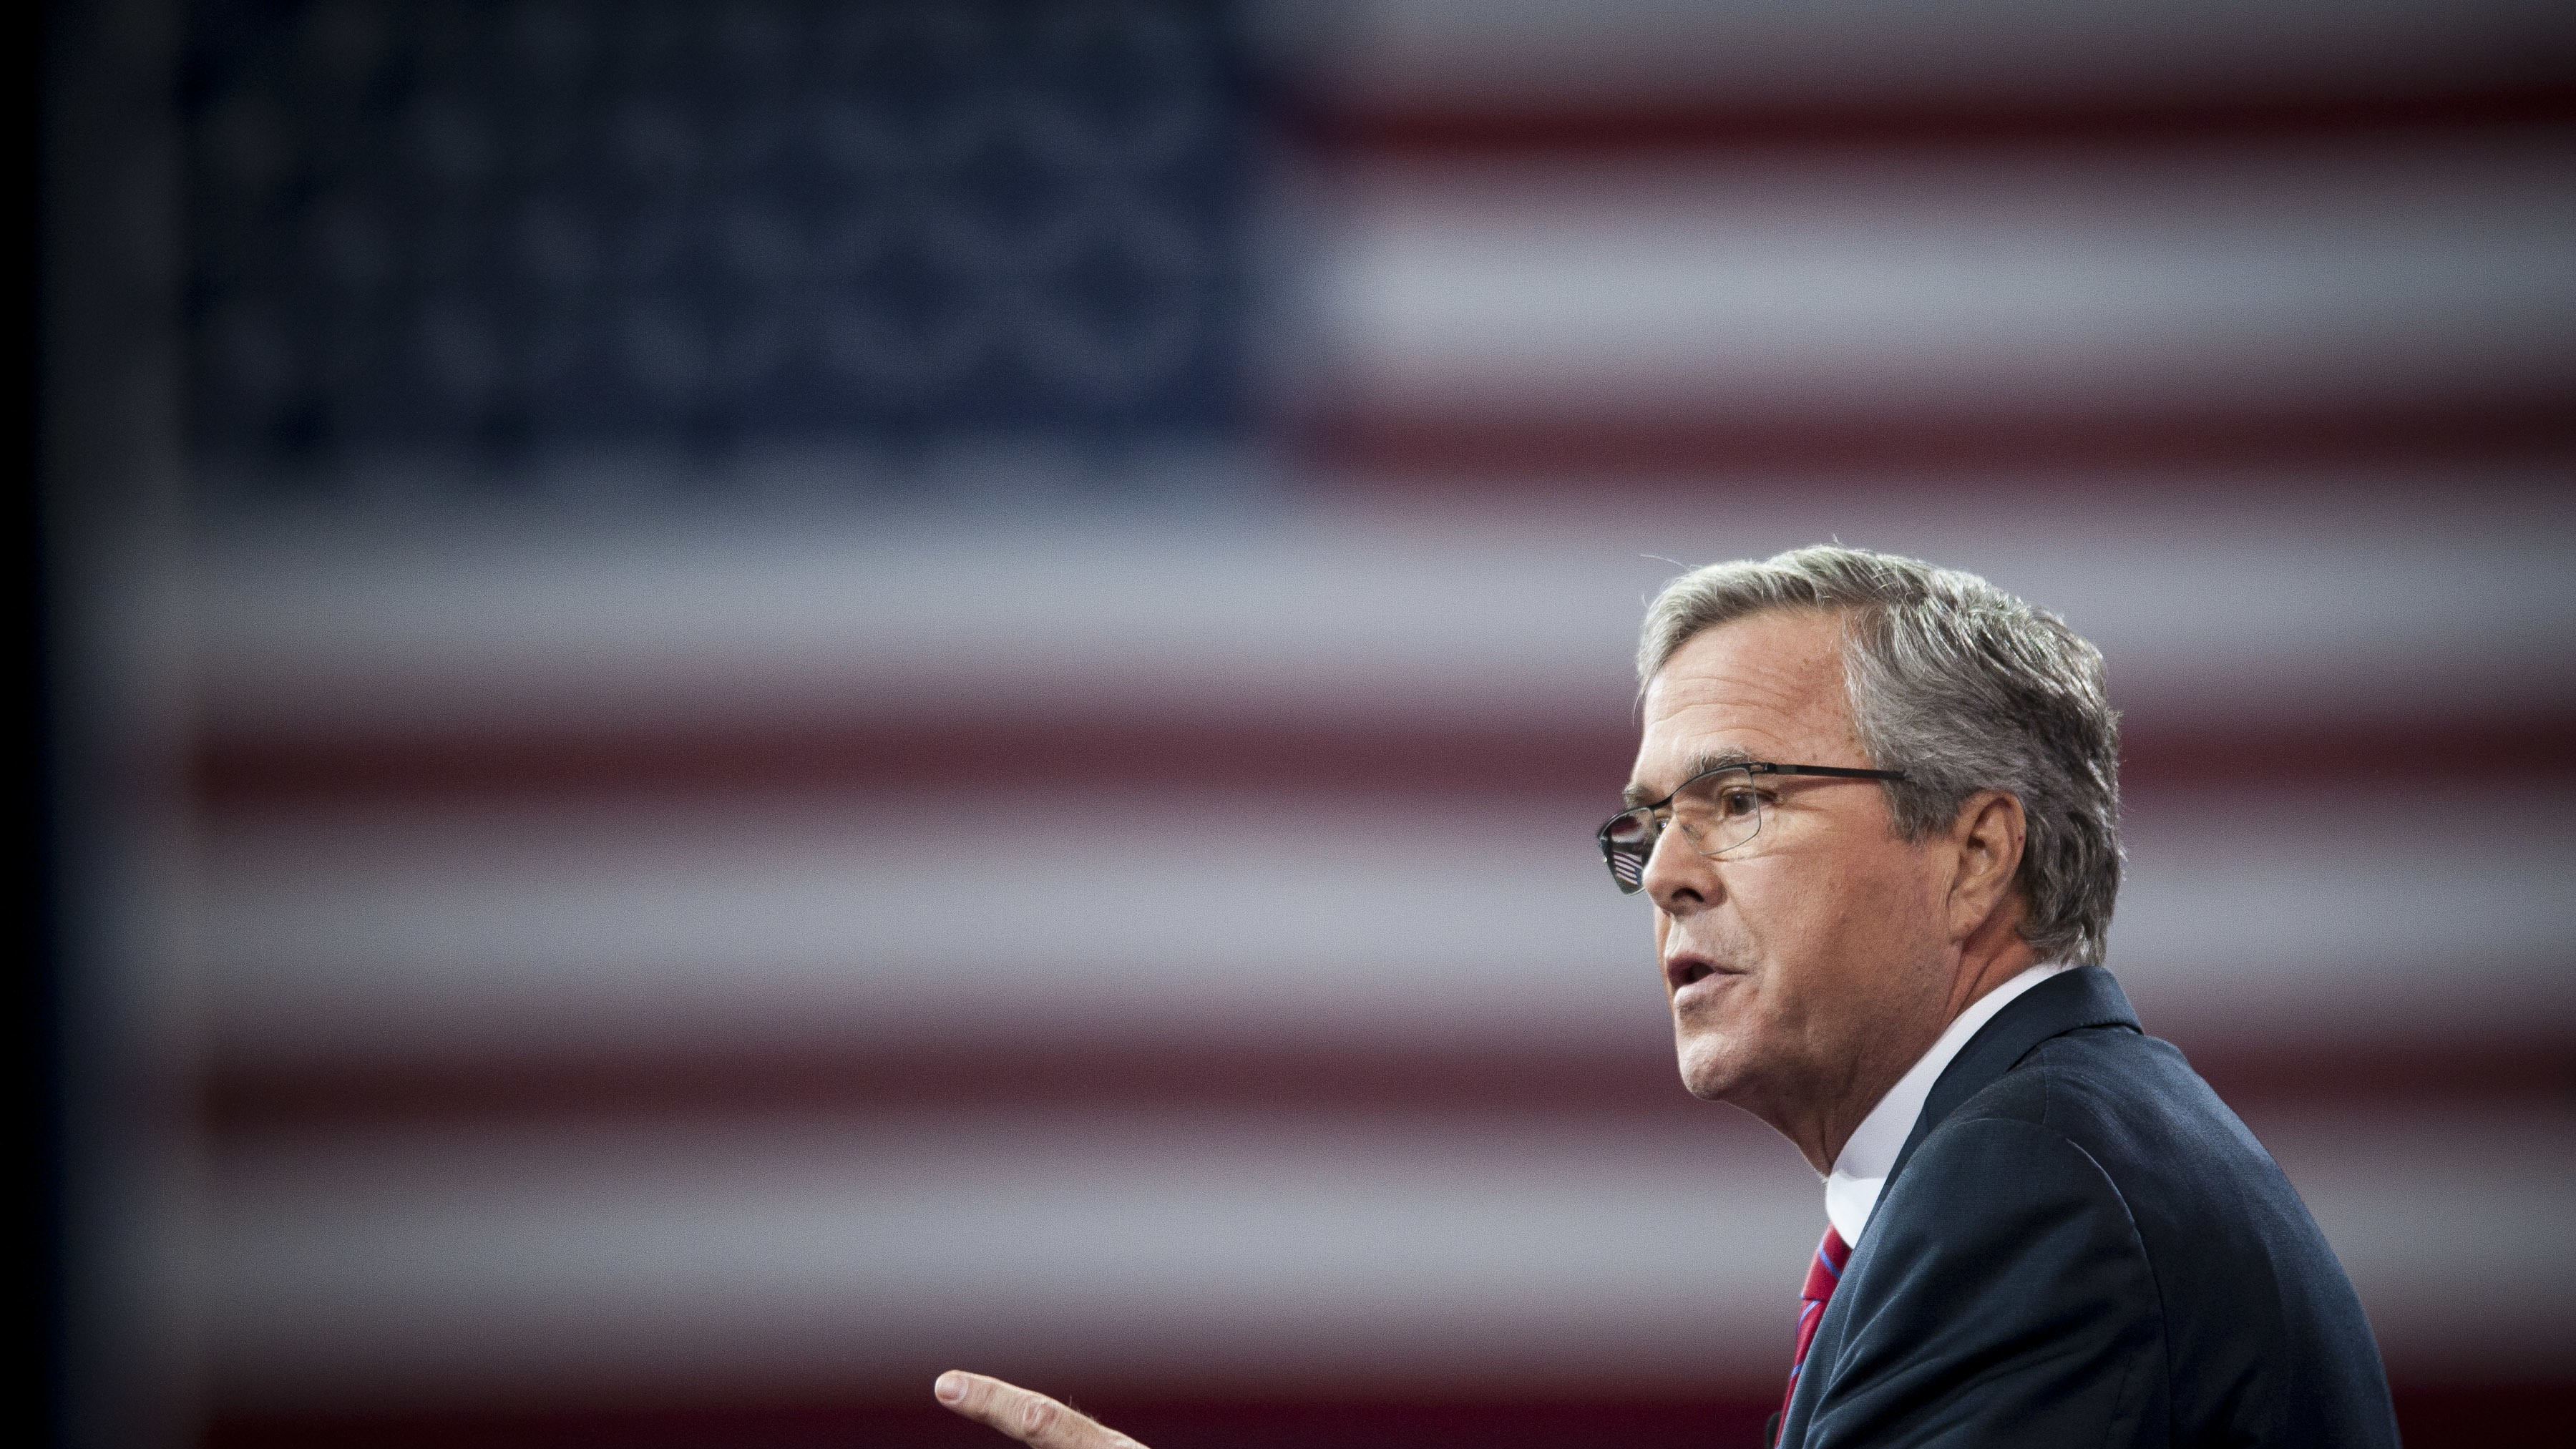 One of the 'Cool Things' Jeb Bush Did Before Running for President Was Get Filthy Rich